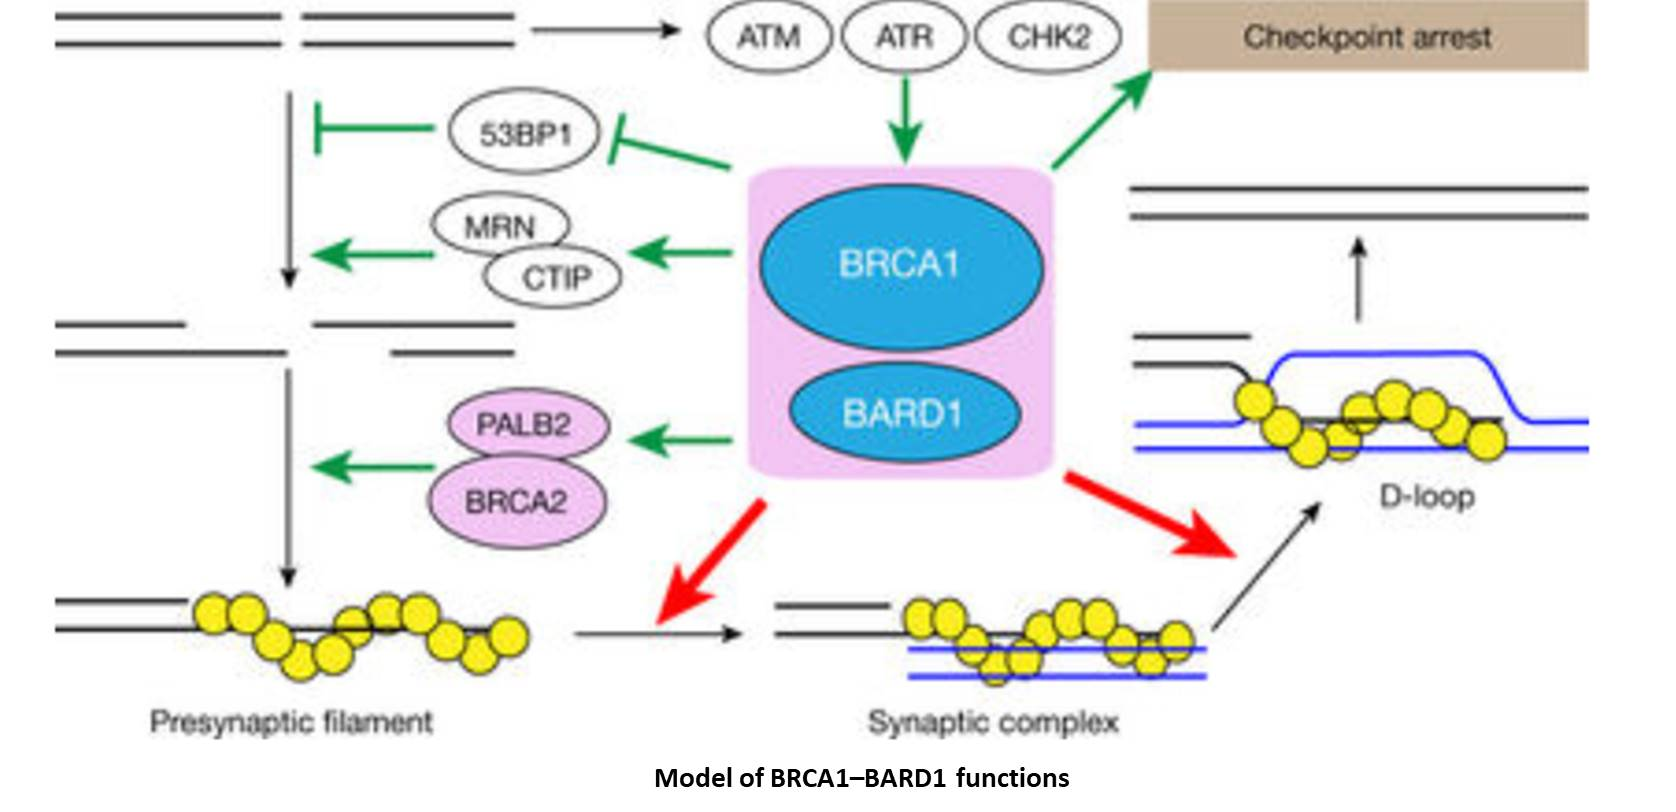 How BRCA1/2 mutations cause cancer?